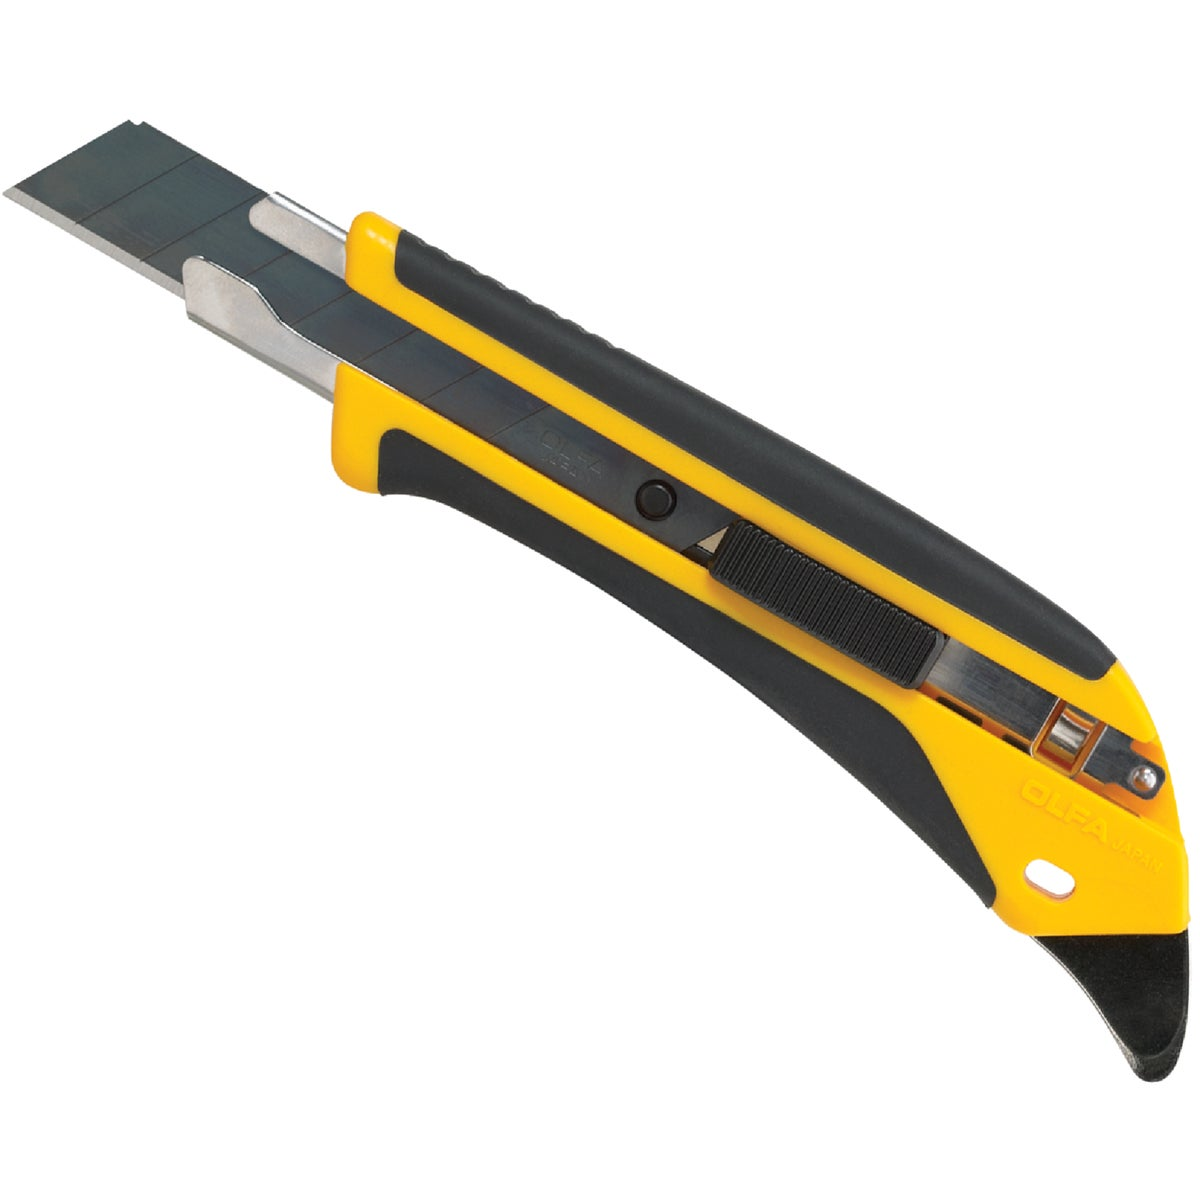 ULTRA GRIP UTILITY KNIFE - 1072198 by Olfa  Incom